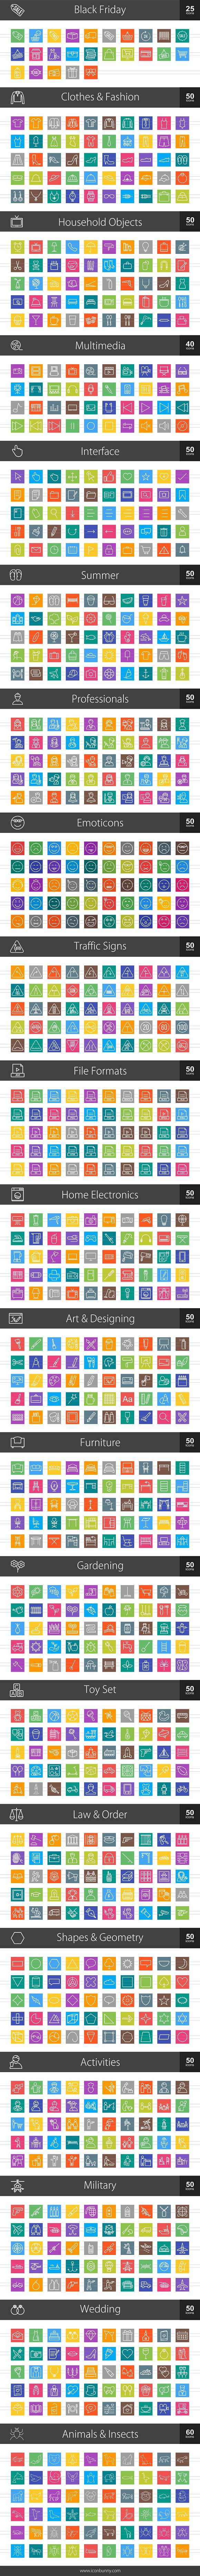 1025 Line Multicolor B/G Icons (V2) in Icons - product preview 1